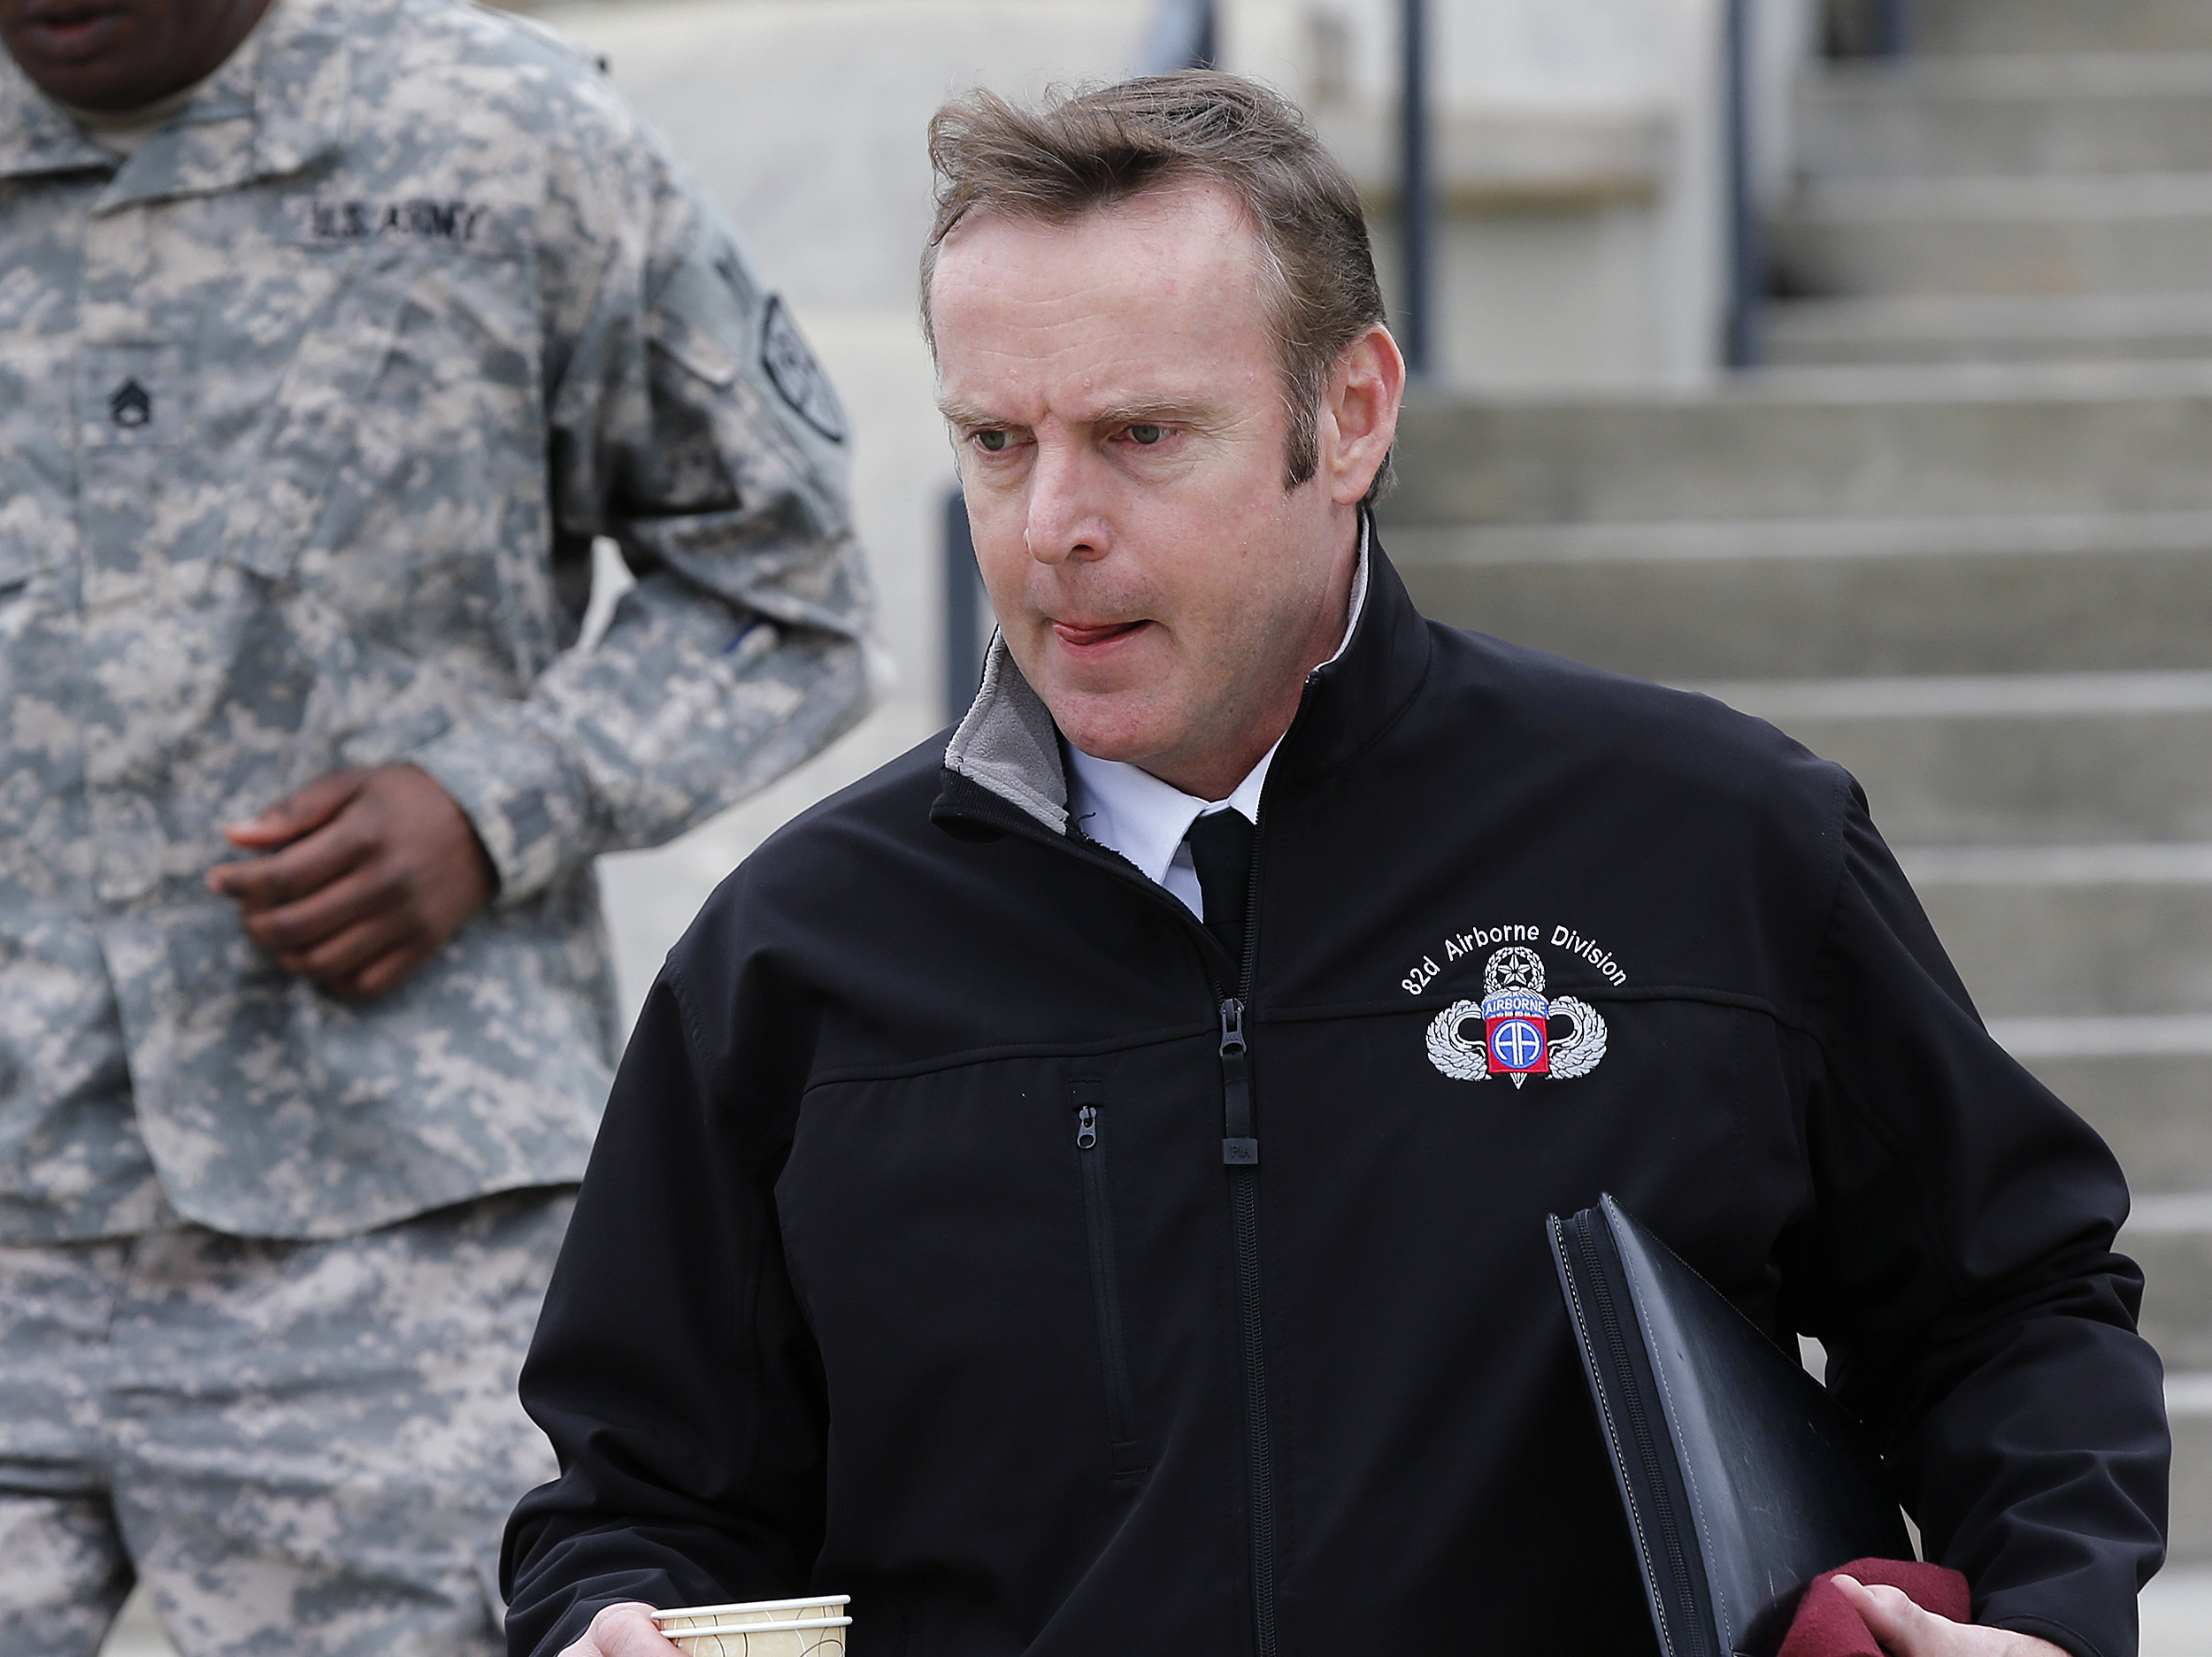 Army Brigadier General Pleads Guilty To Adultery